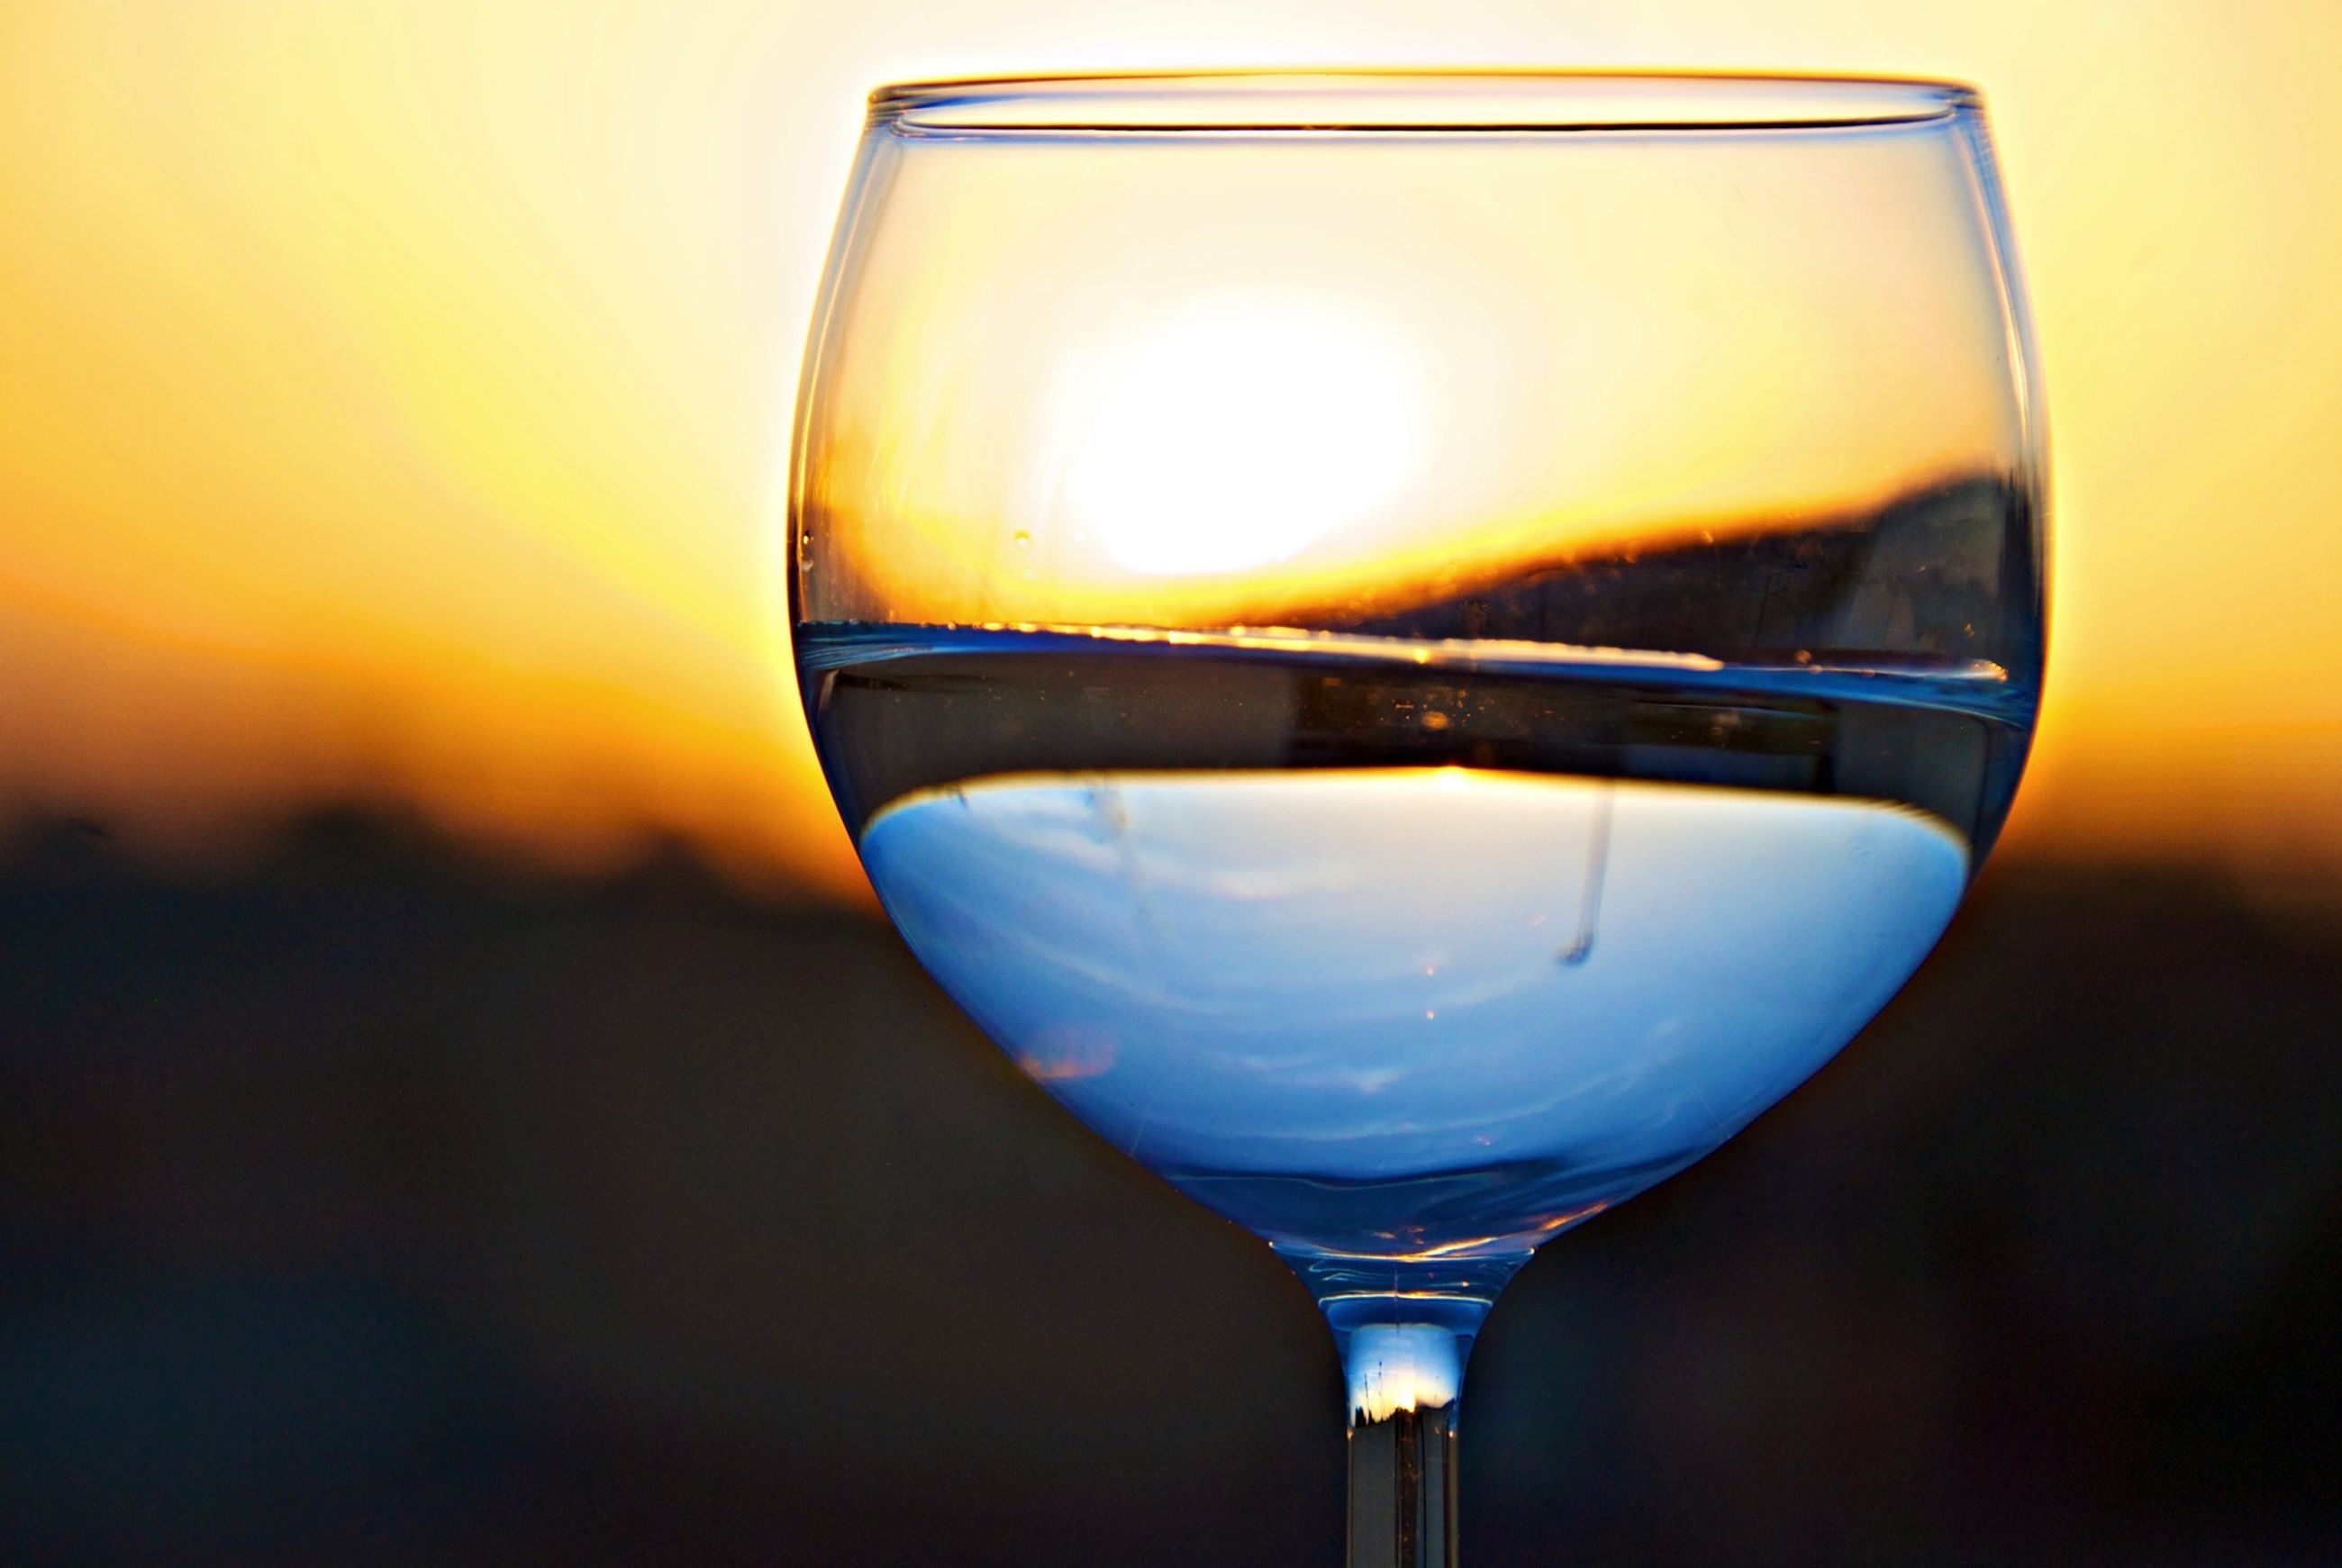 close-up, sunset, transparent, glass - material, refreshment, drink, focus on foreground, drinking glass, food and drink, freshness, alcohol, wineglass, orange color, wine, reflection, sky, indoors, no people, single object, copy space